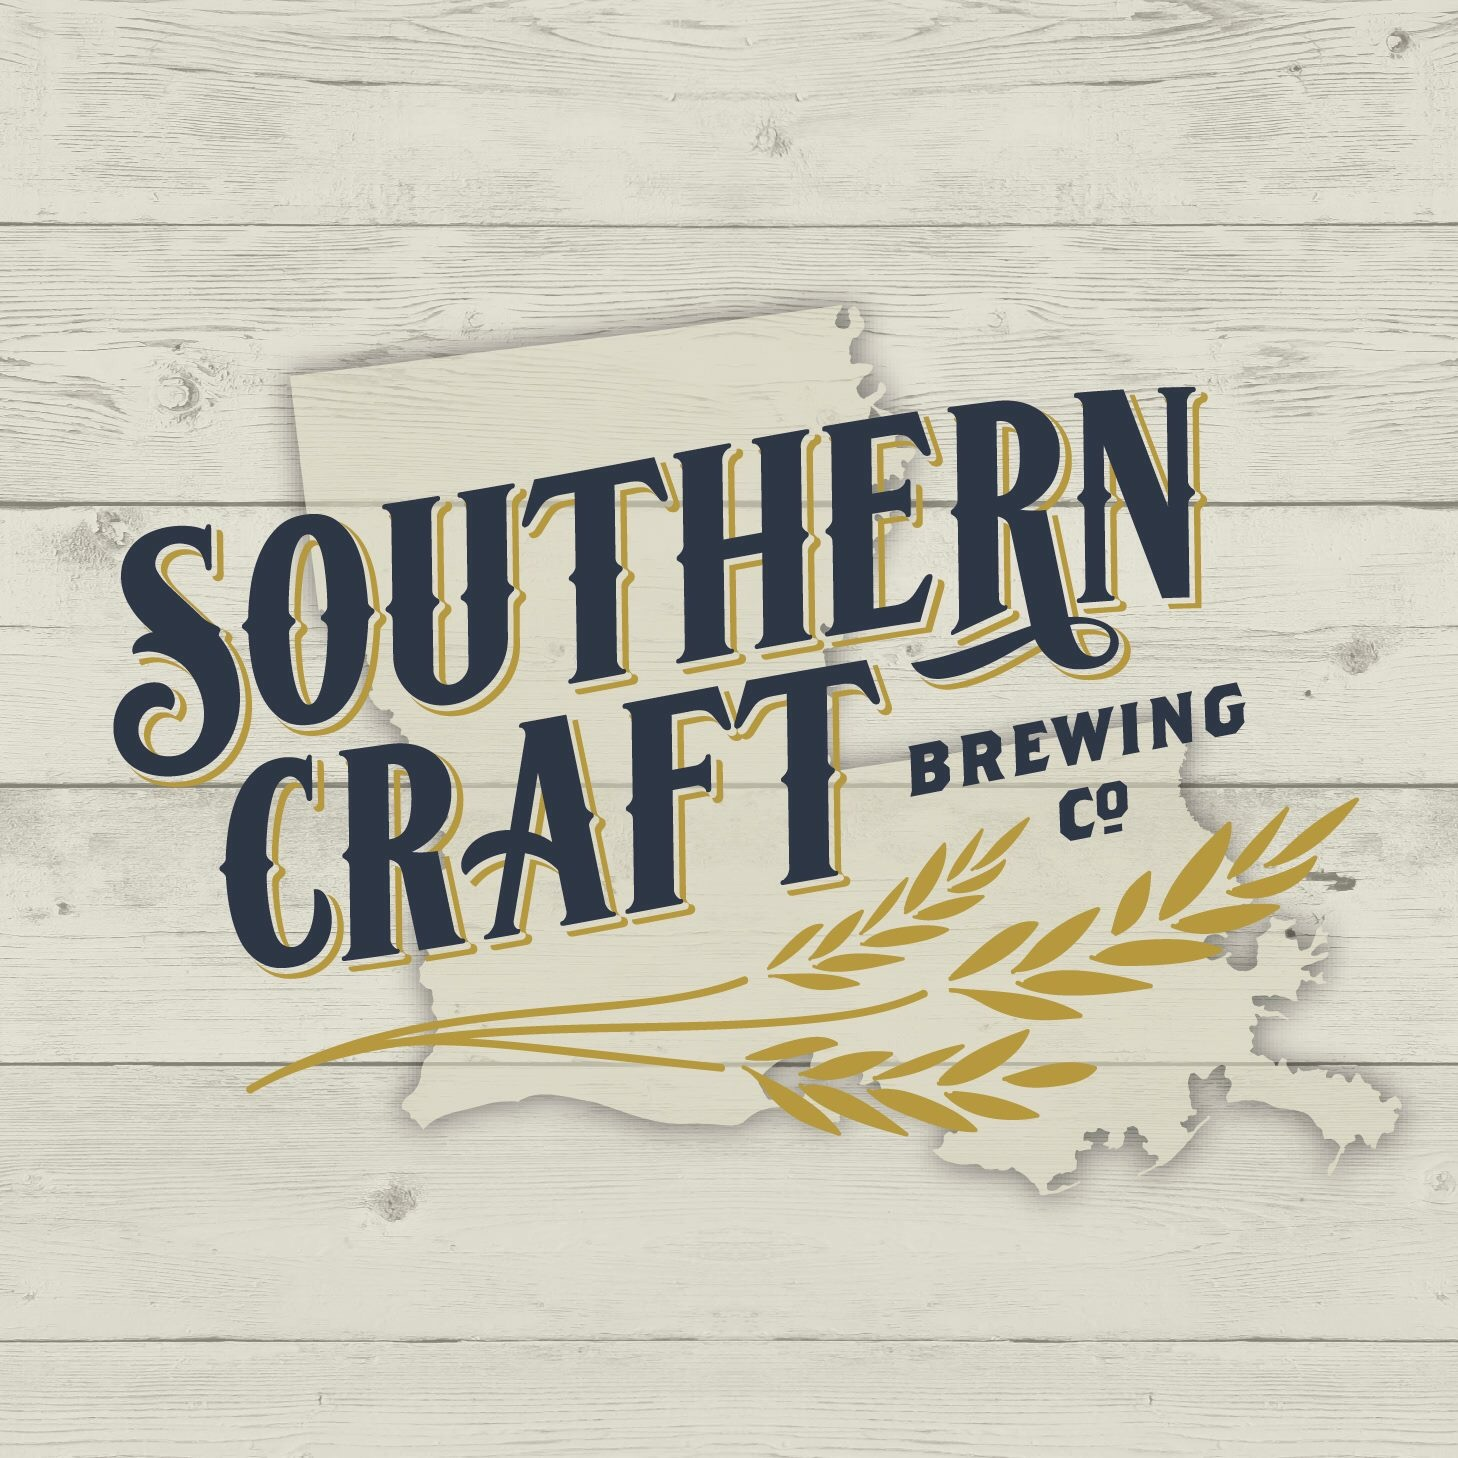 Southern Craft Brewing Company